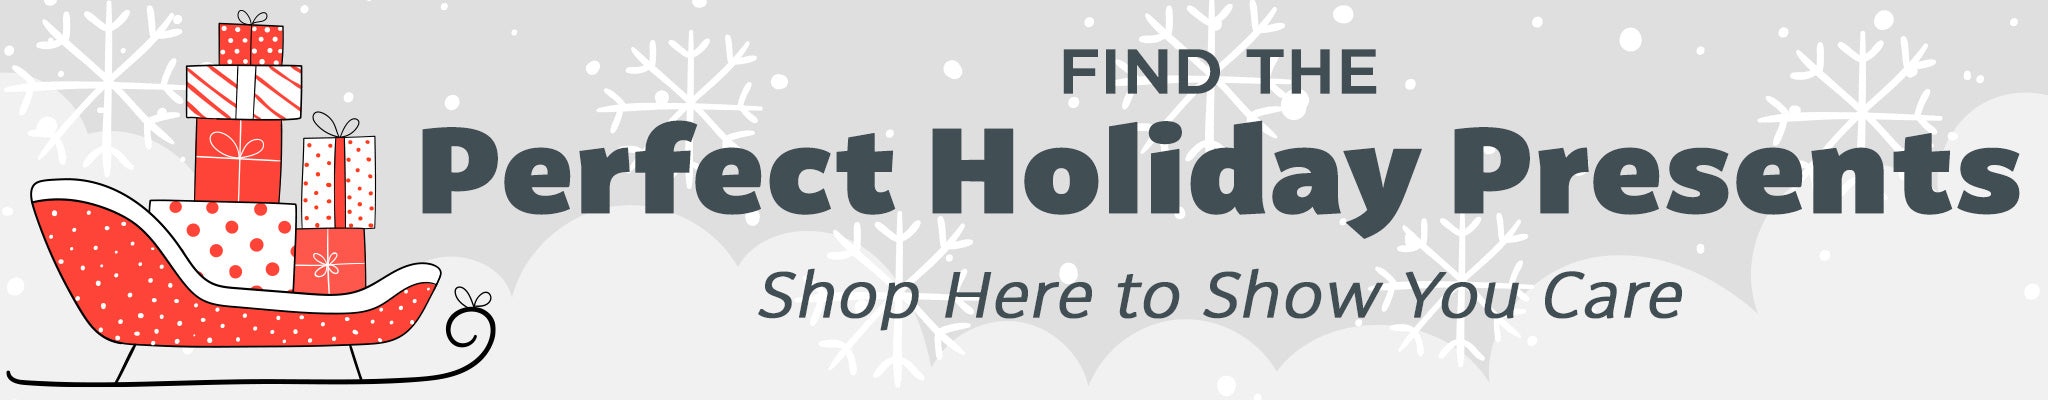 Find the Perfect Holiday Presents | Shop Here to Show You Care